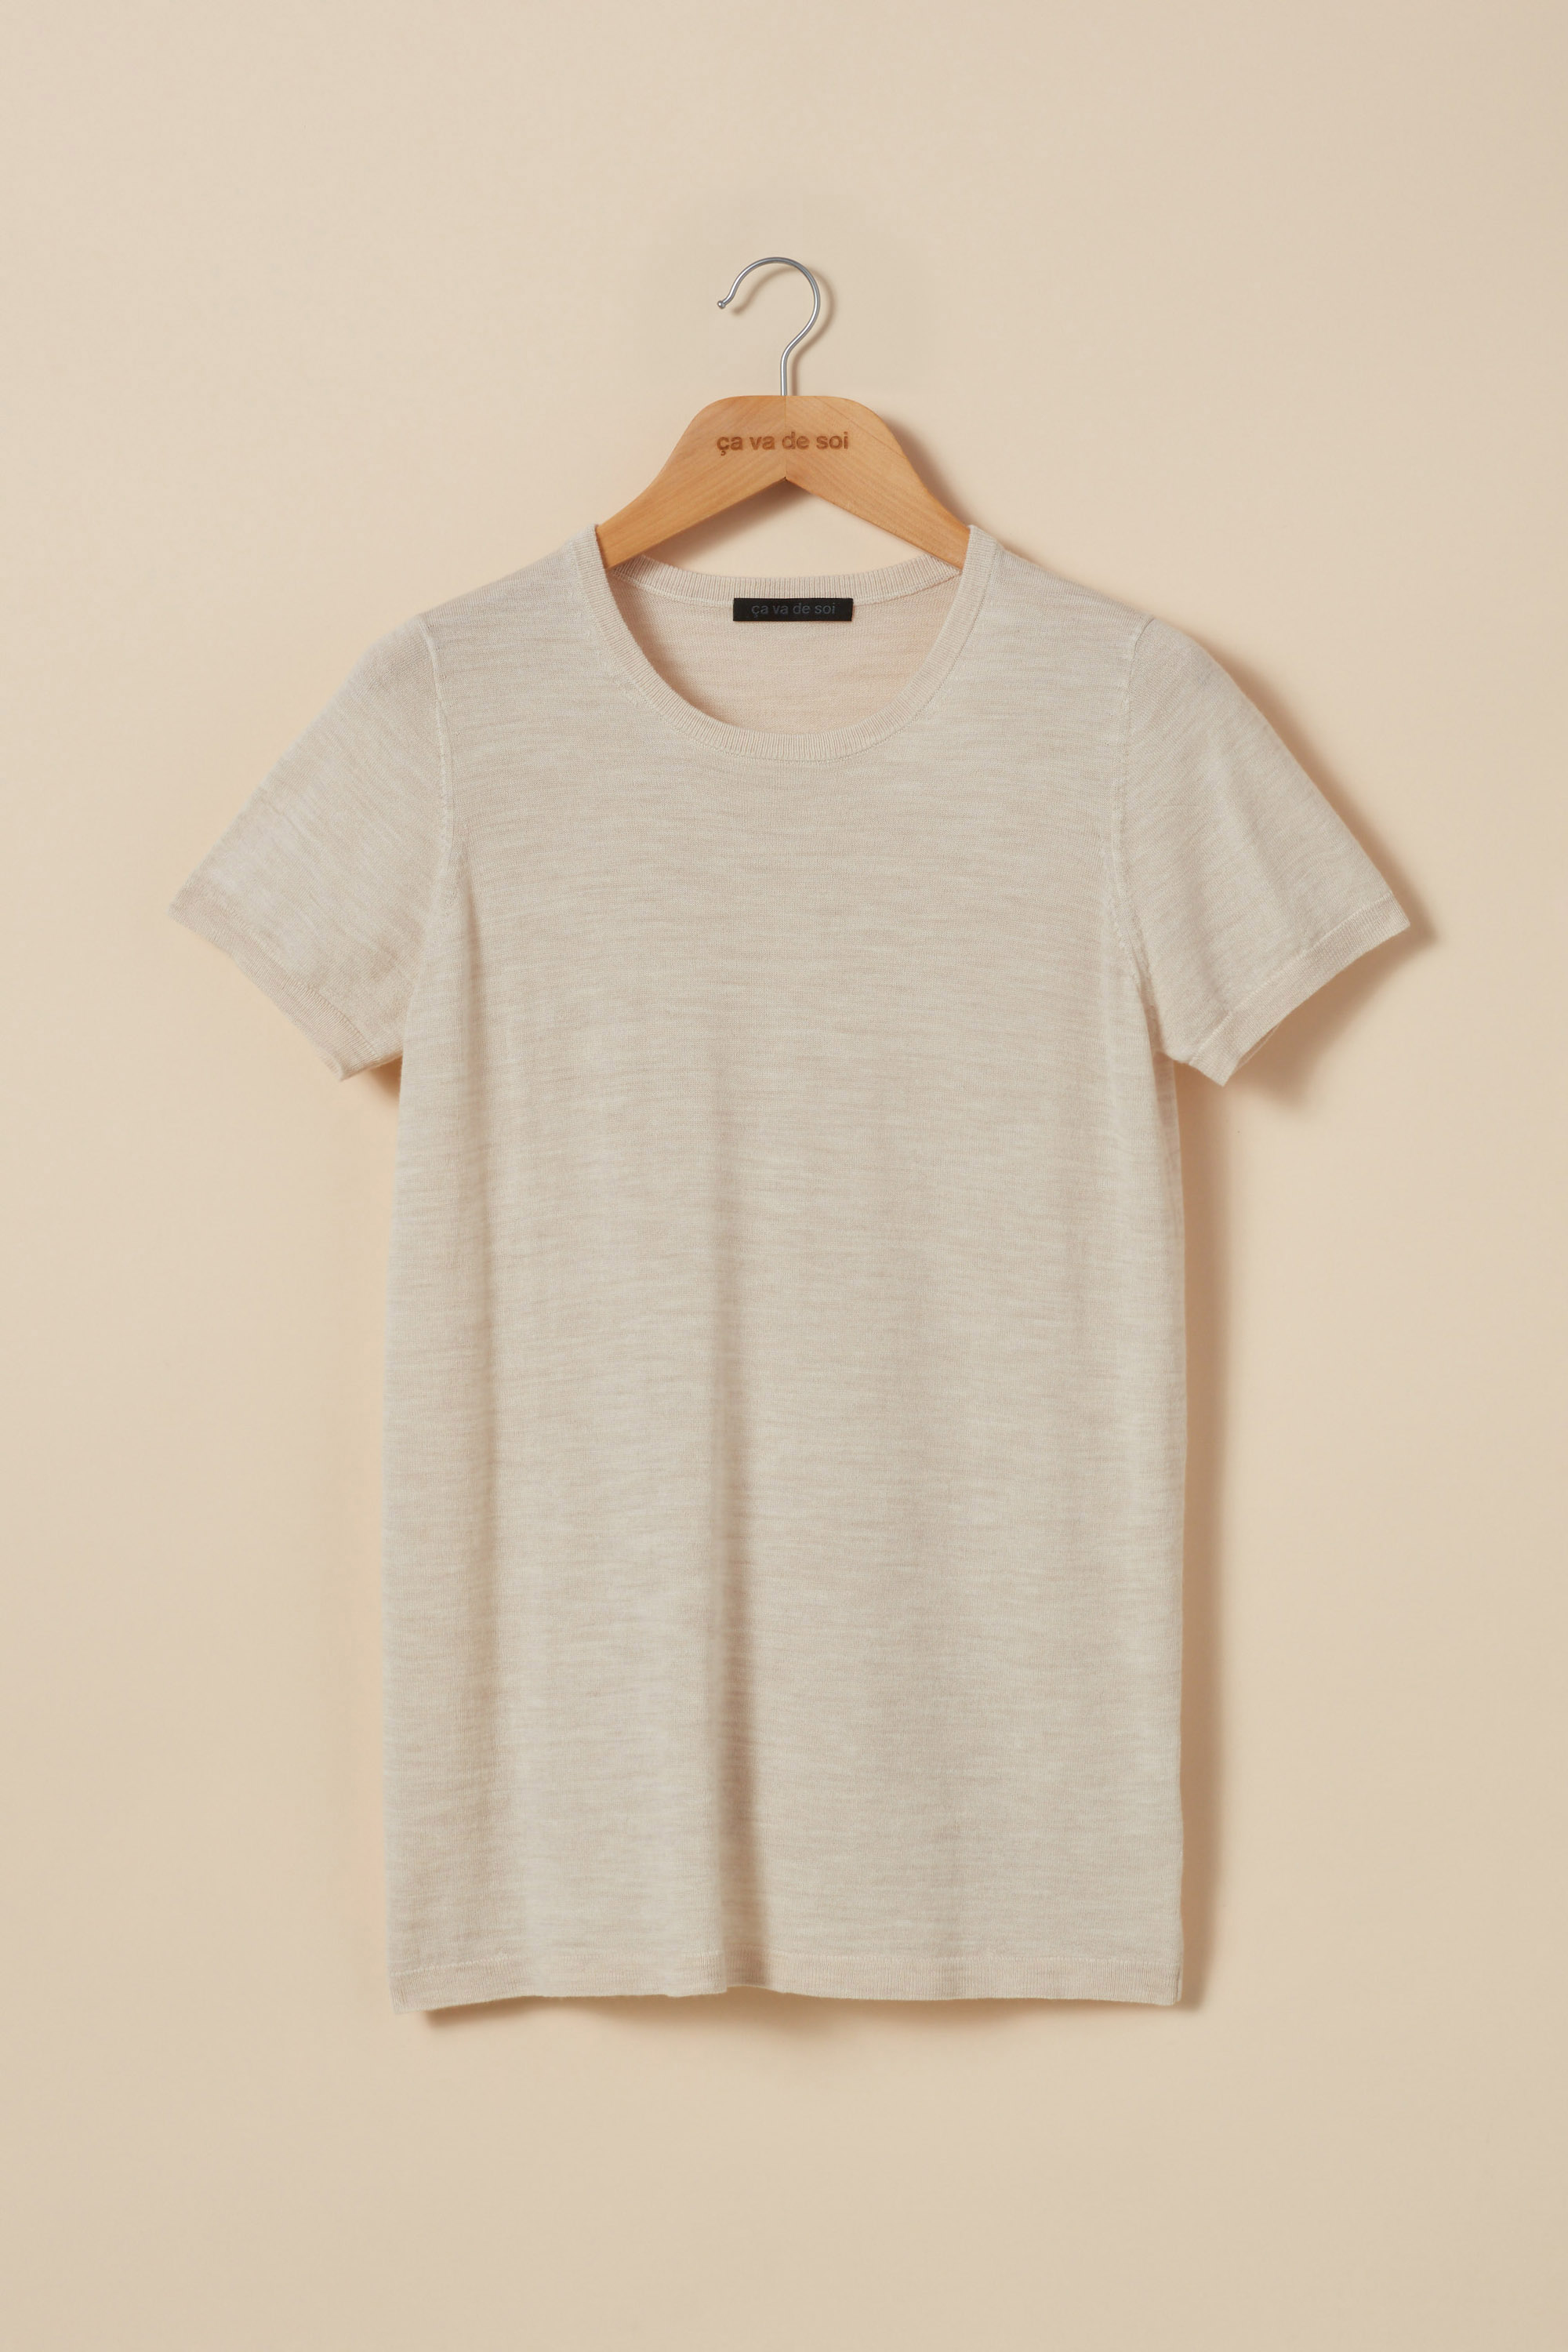 Extra-fine merino wool short-sleeve t-shirt sweater